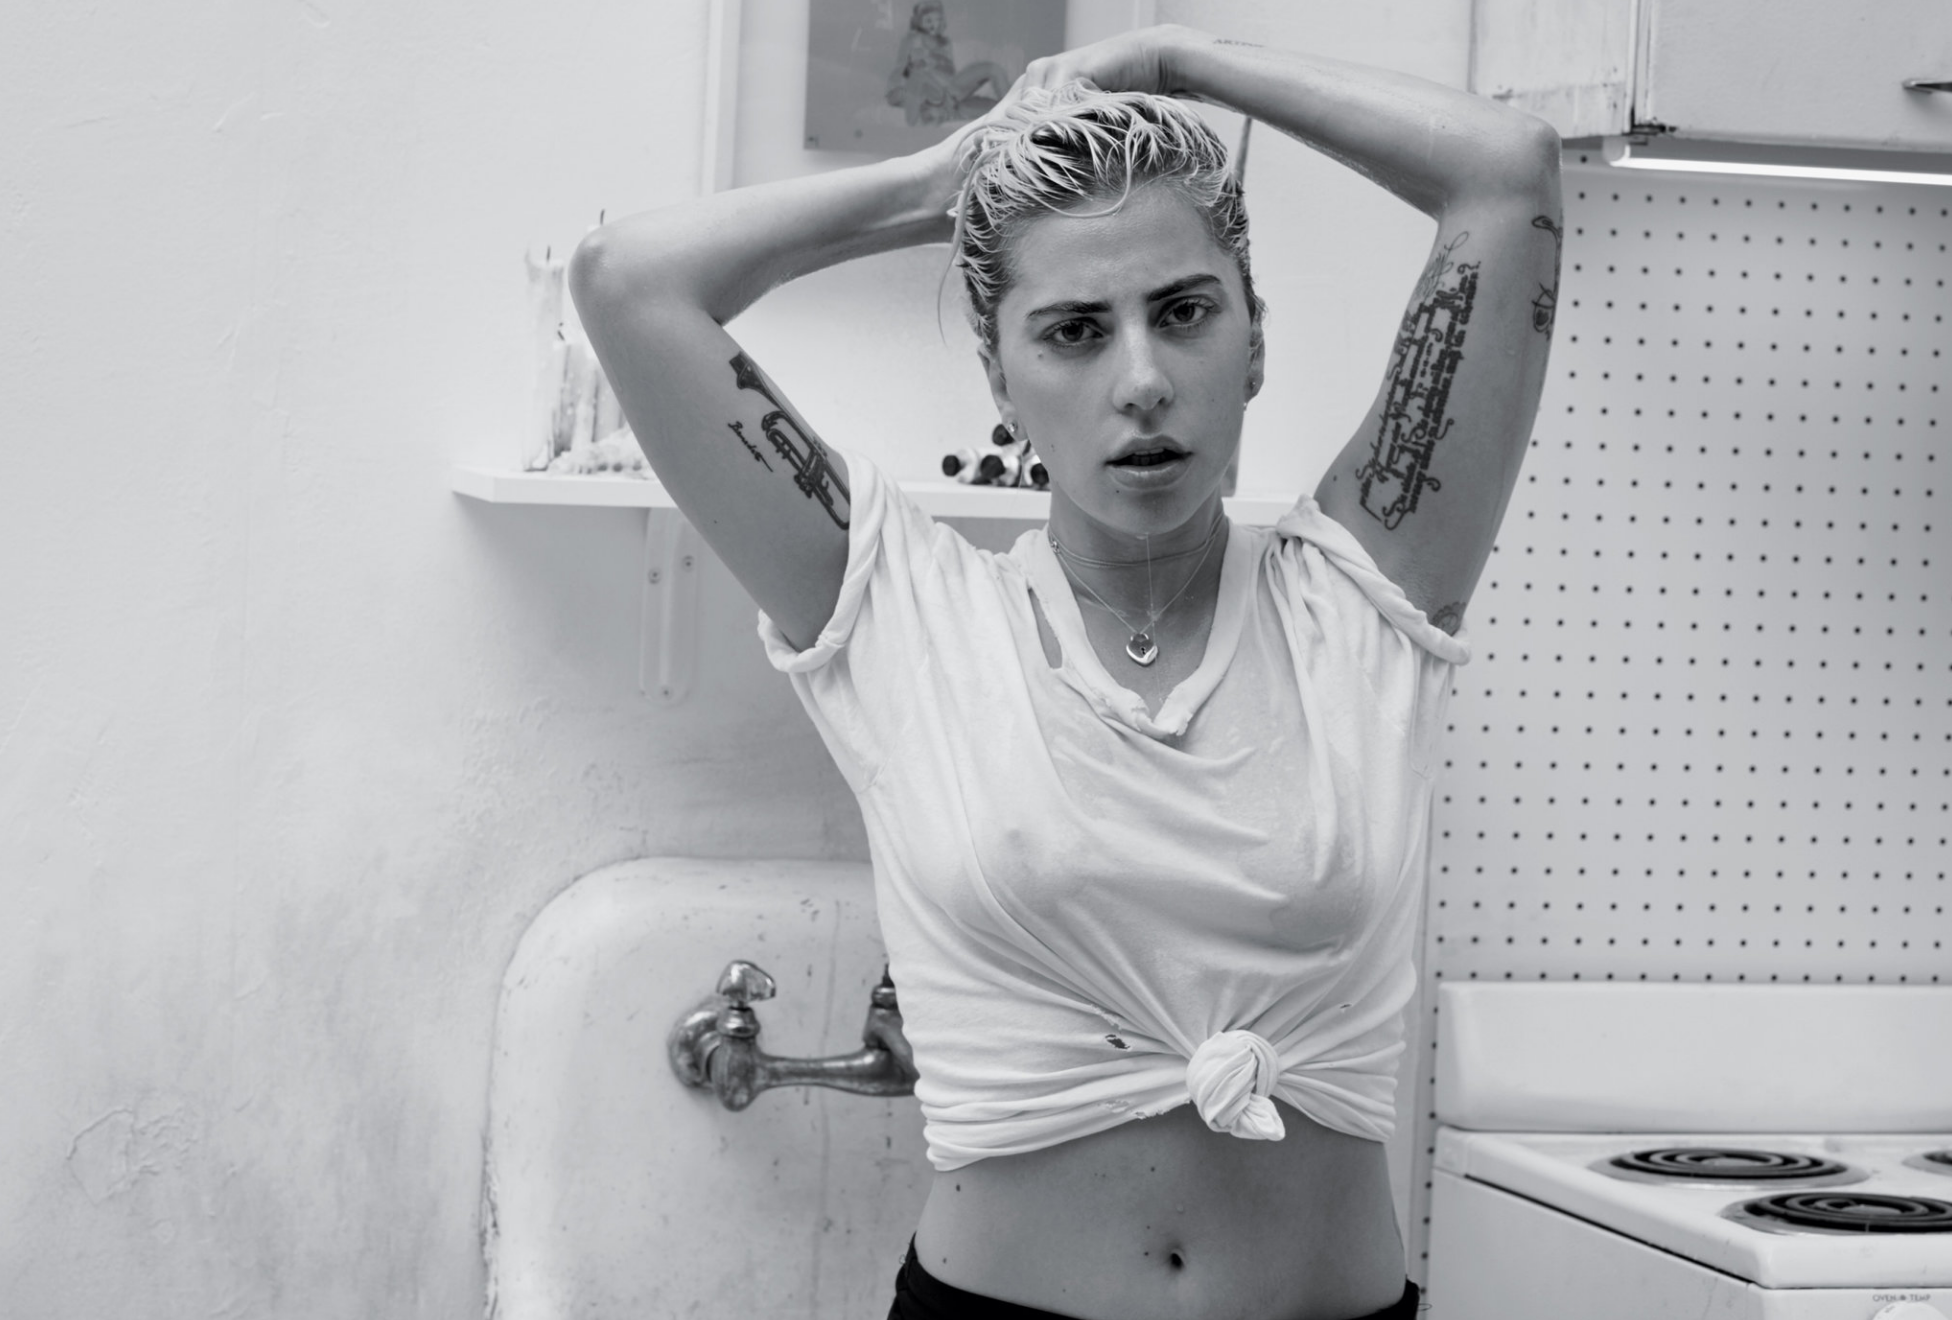 See more at: http://www.nytimes.com/2016/10/17/t-magazine/lady-gaga-joanne.html